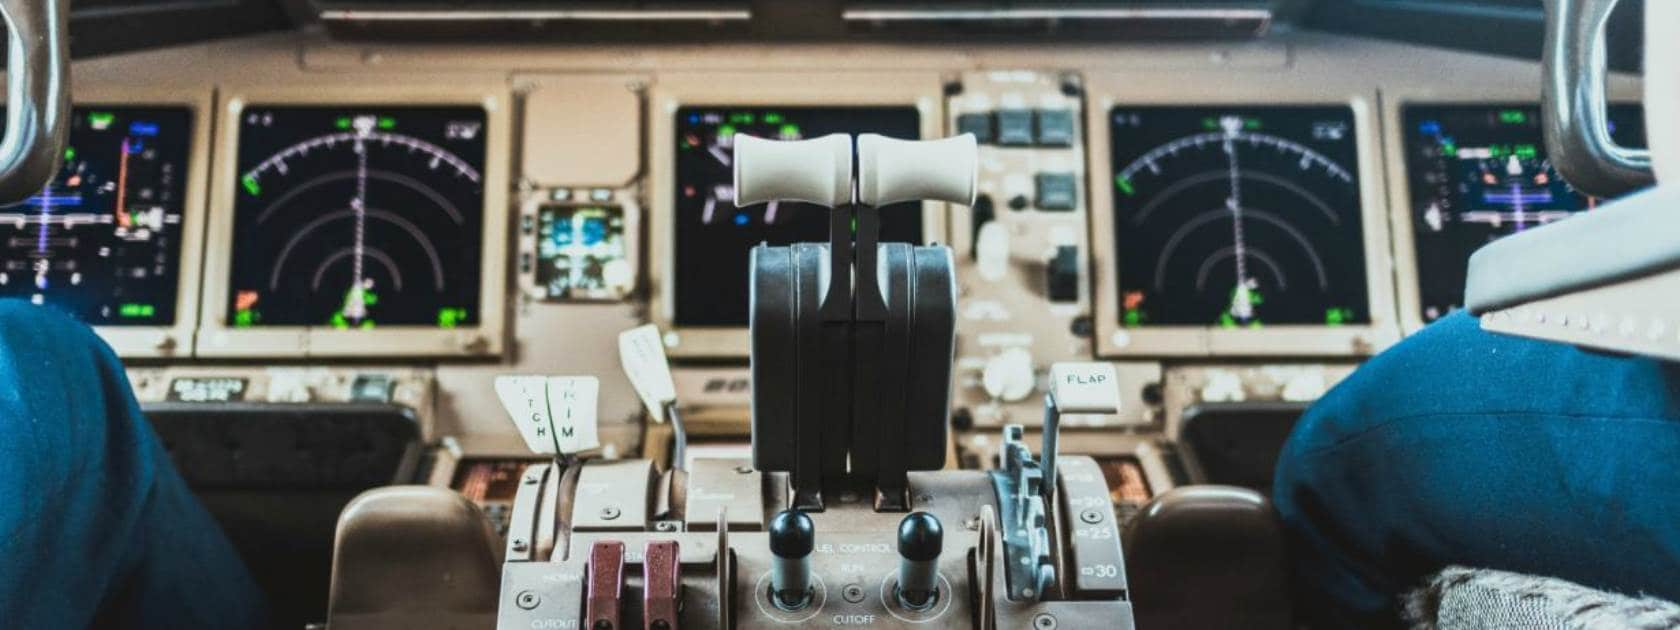 A view of the cockpit in an airplane